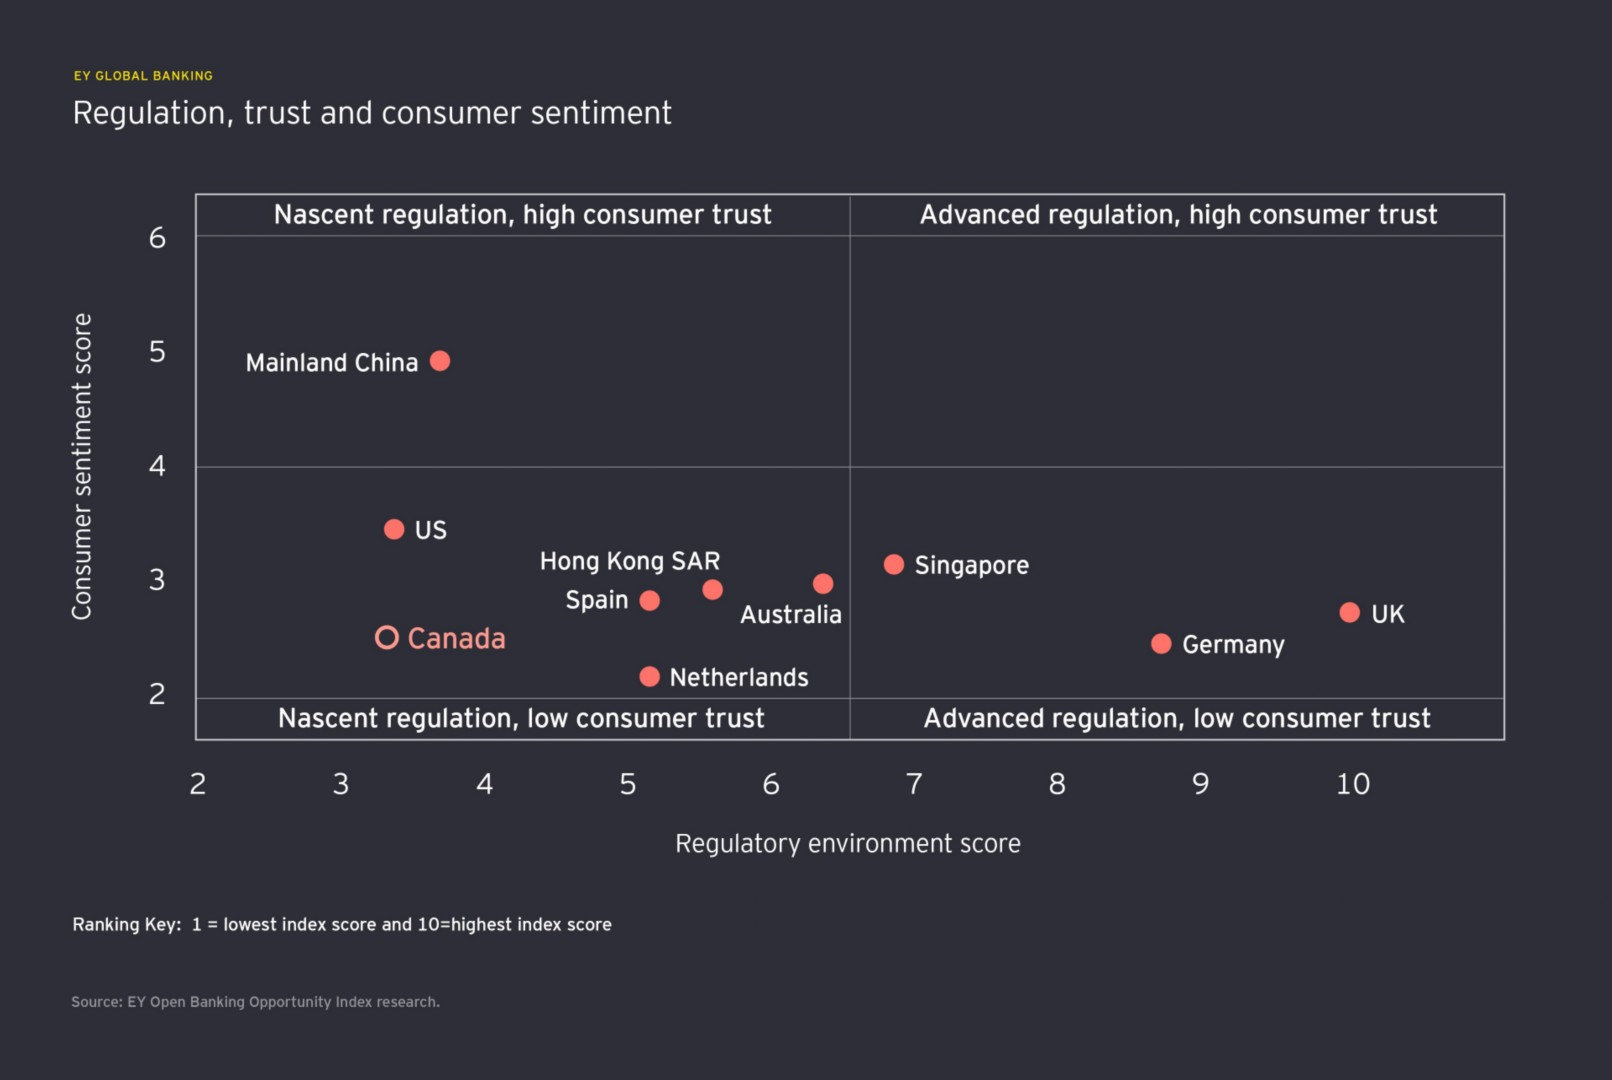 Canada: Regulation, trust and consumer sentiment